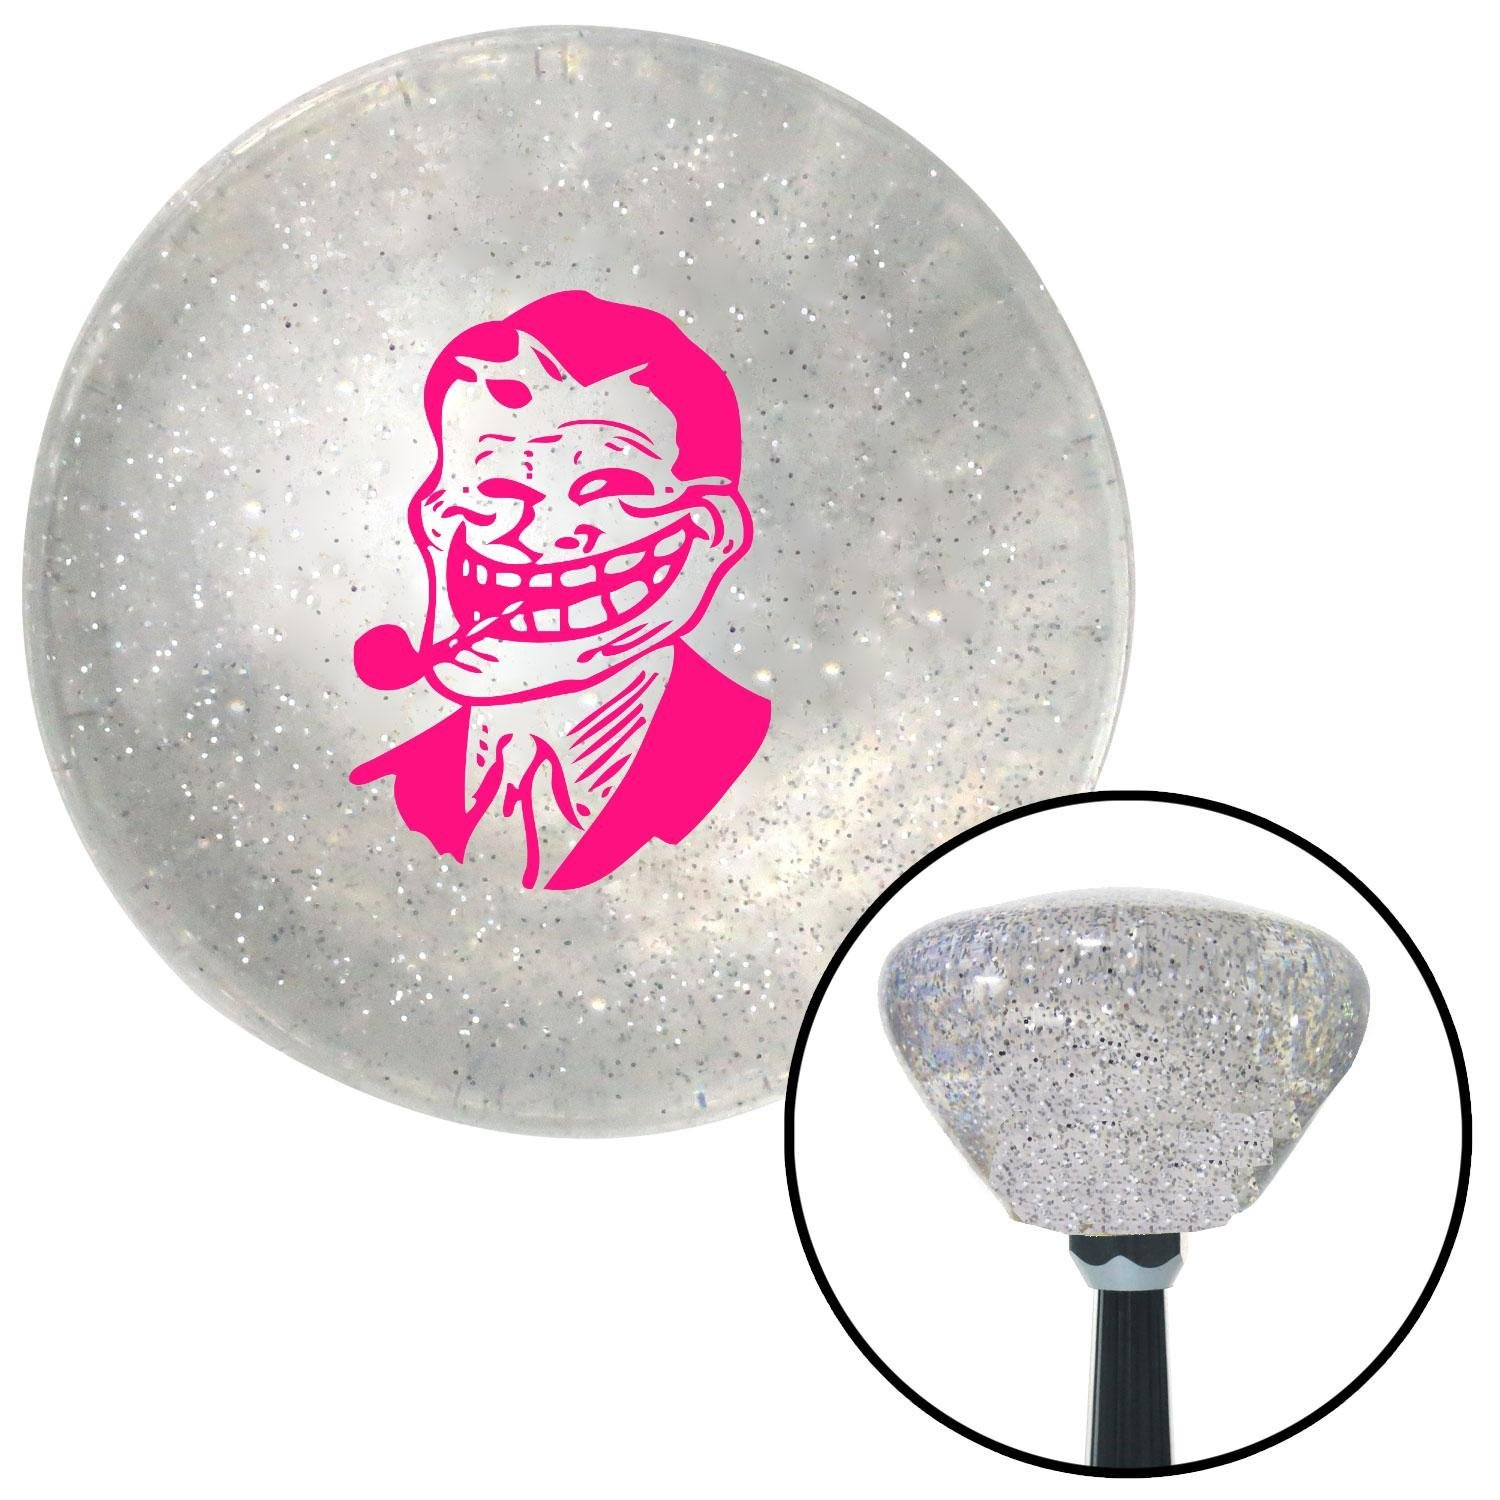 Pink Troll Dad American Shifter 161697 Clear Retro Metal Flake Shift Knob with M16 x 1.5 Insert